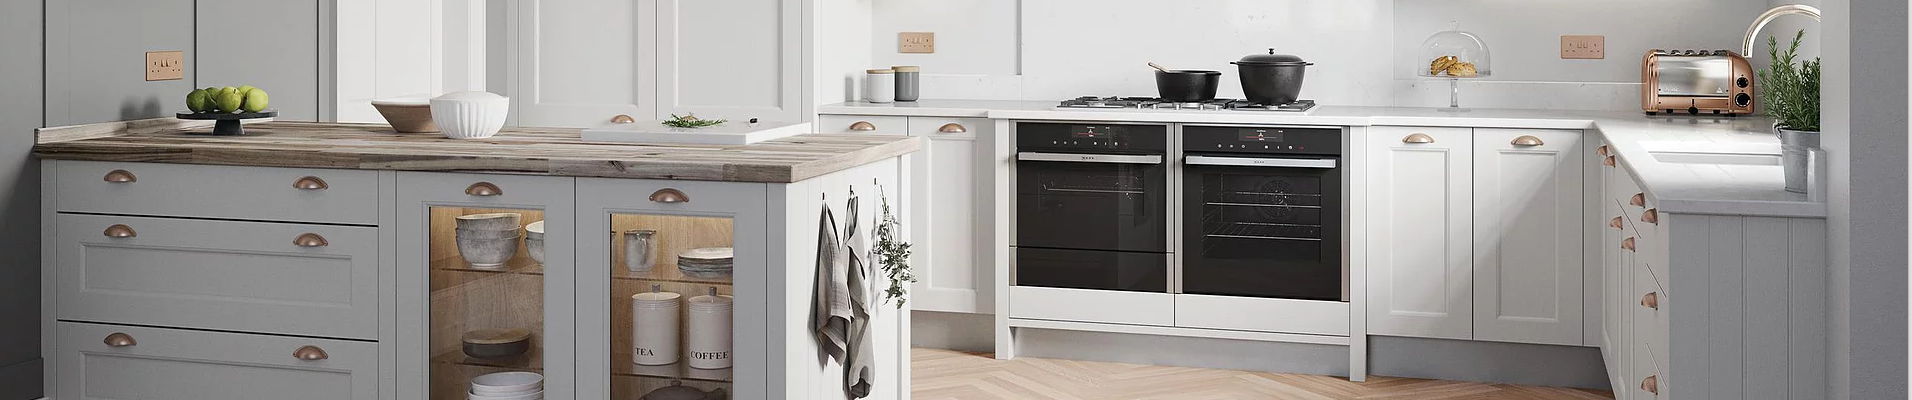 Cabinet Manufacture Stockport